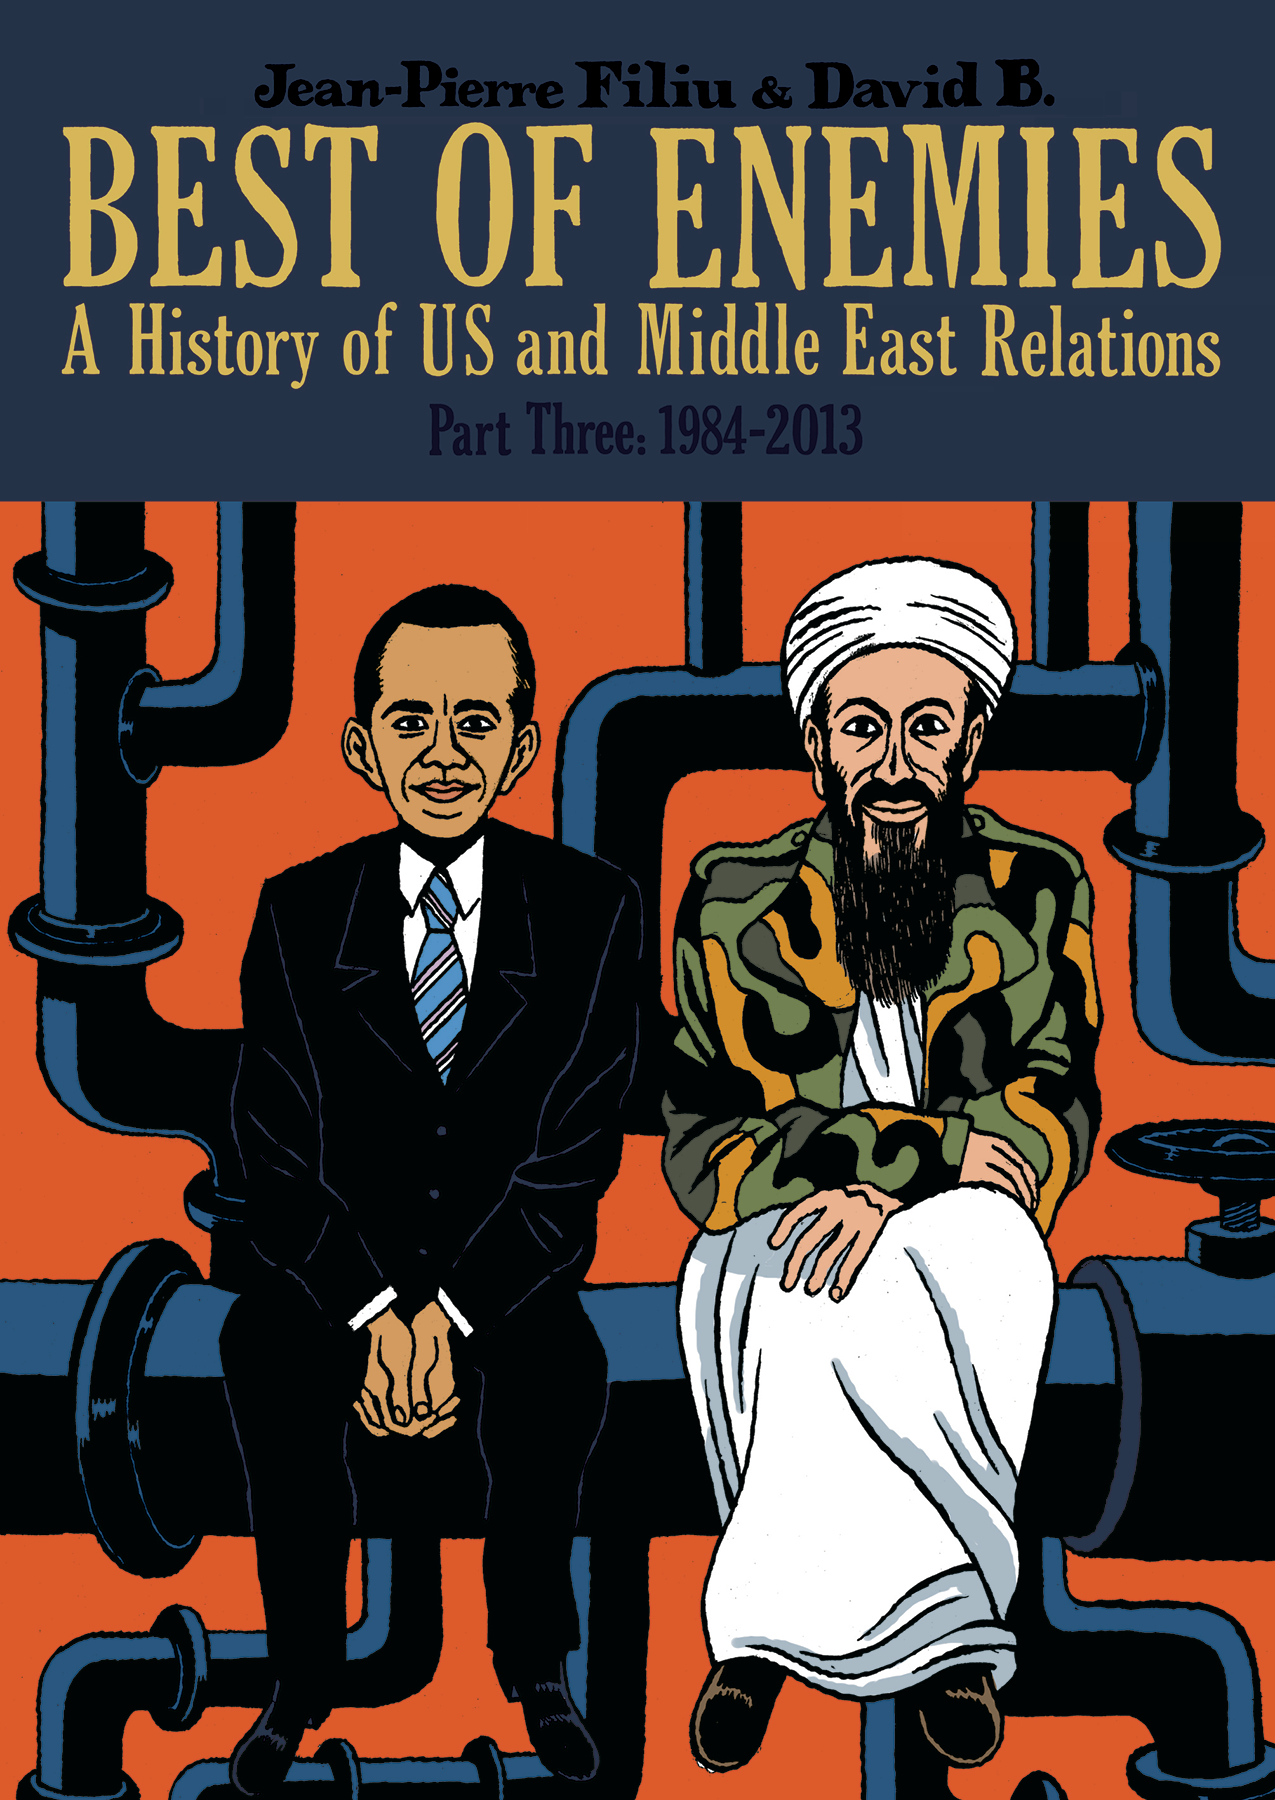 BEST OF ENEMIES HIST OF US MIDDLE EAST RELATIONS HC VOL 03 1